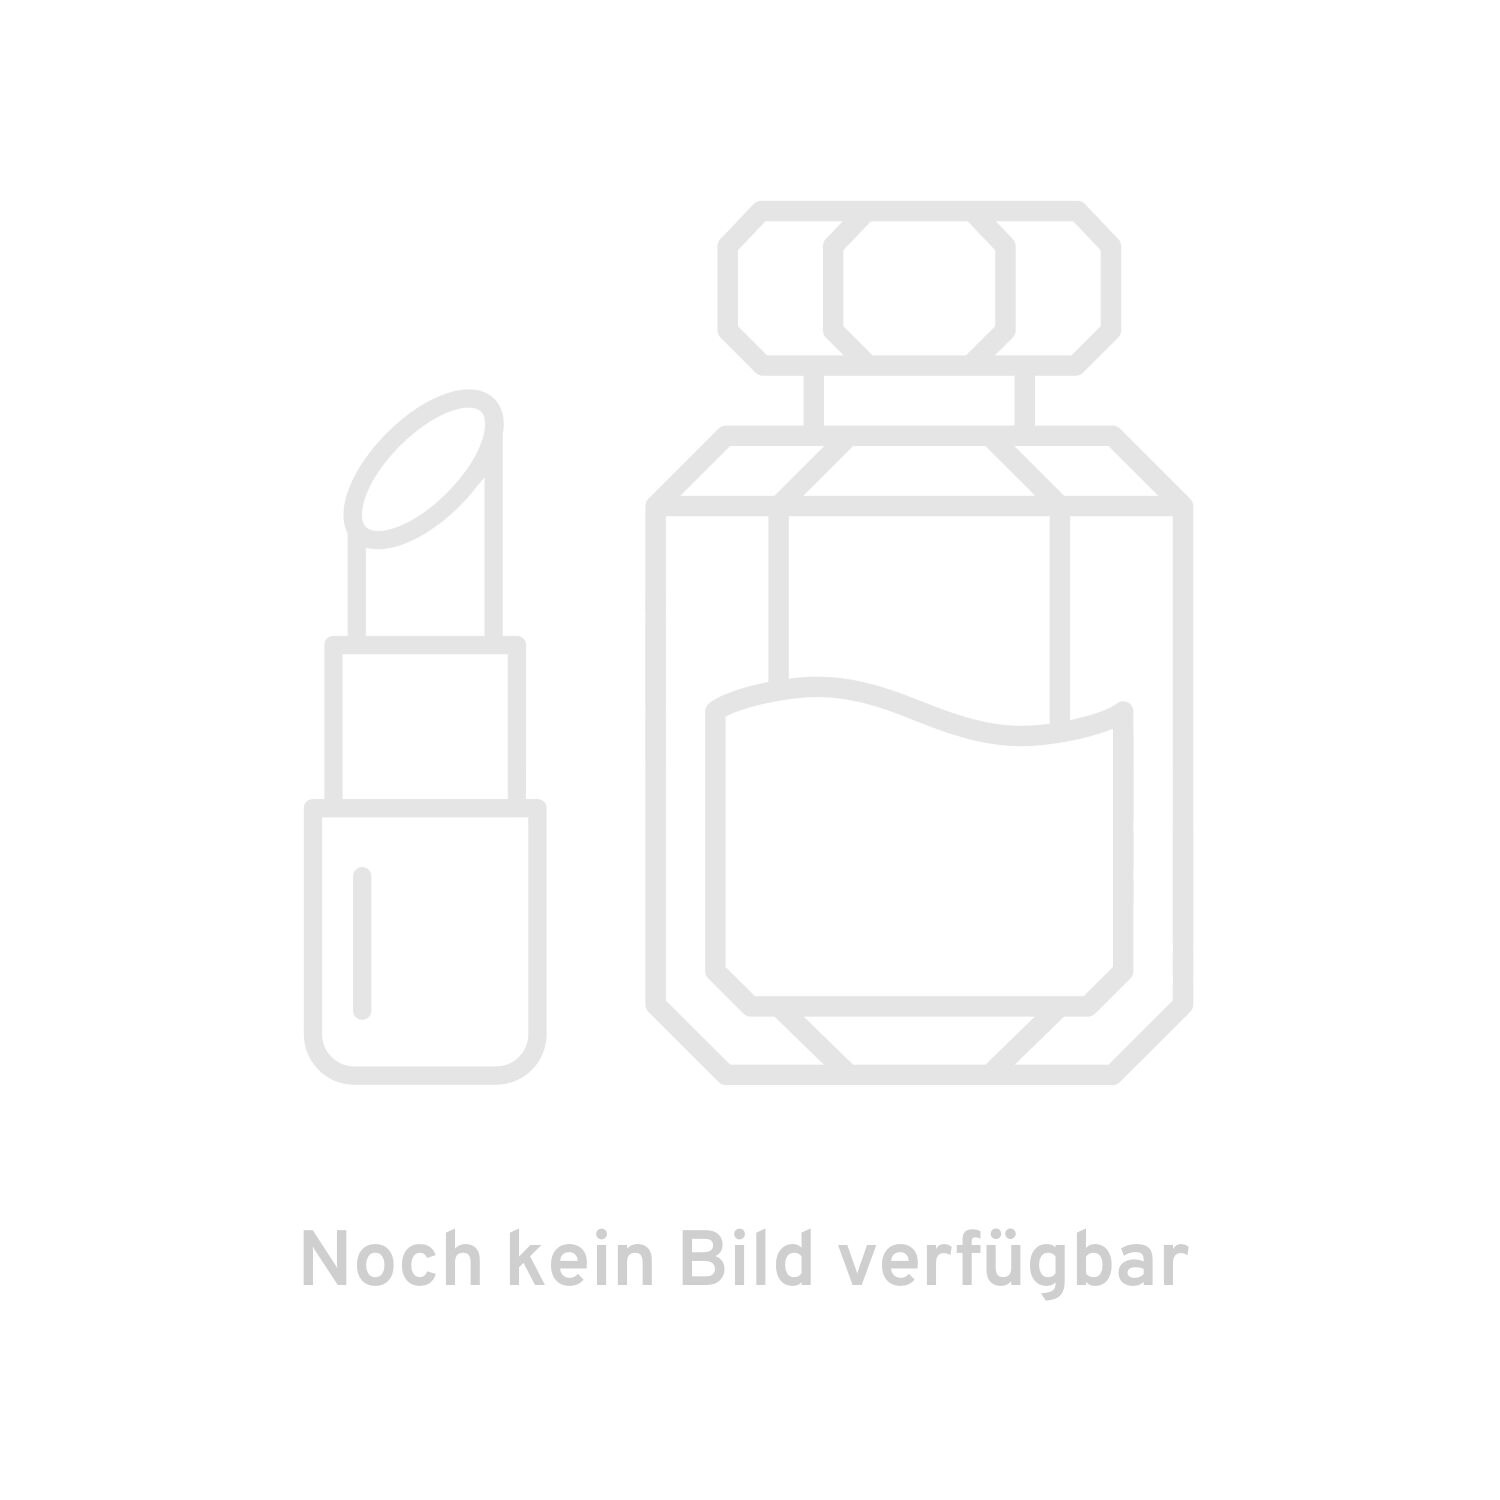 brilliant™ spray-on shine